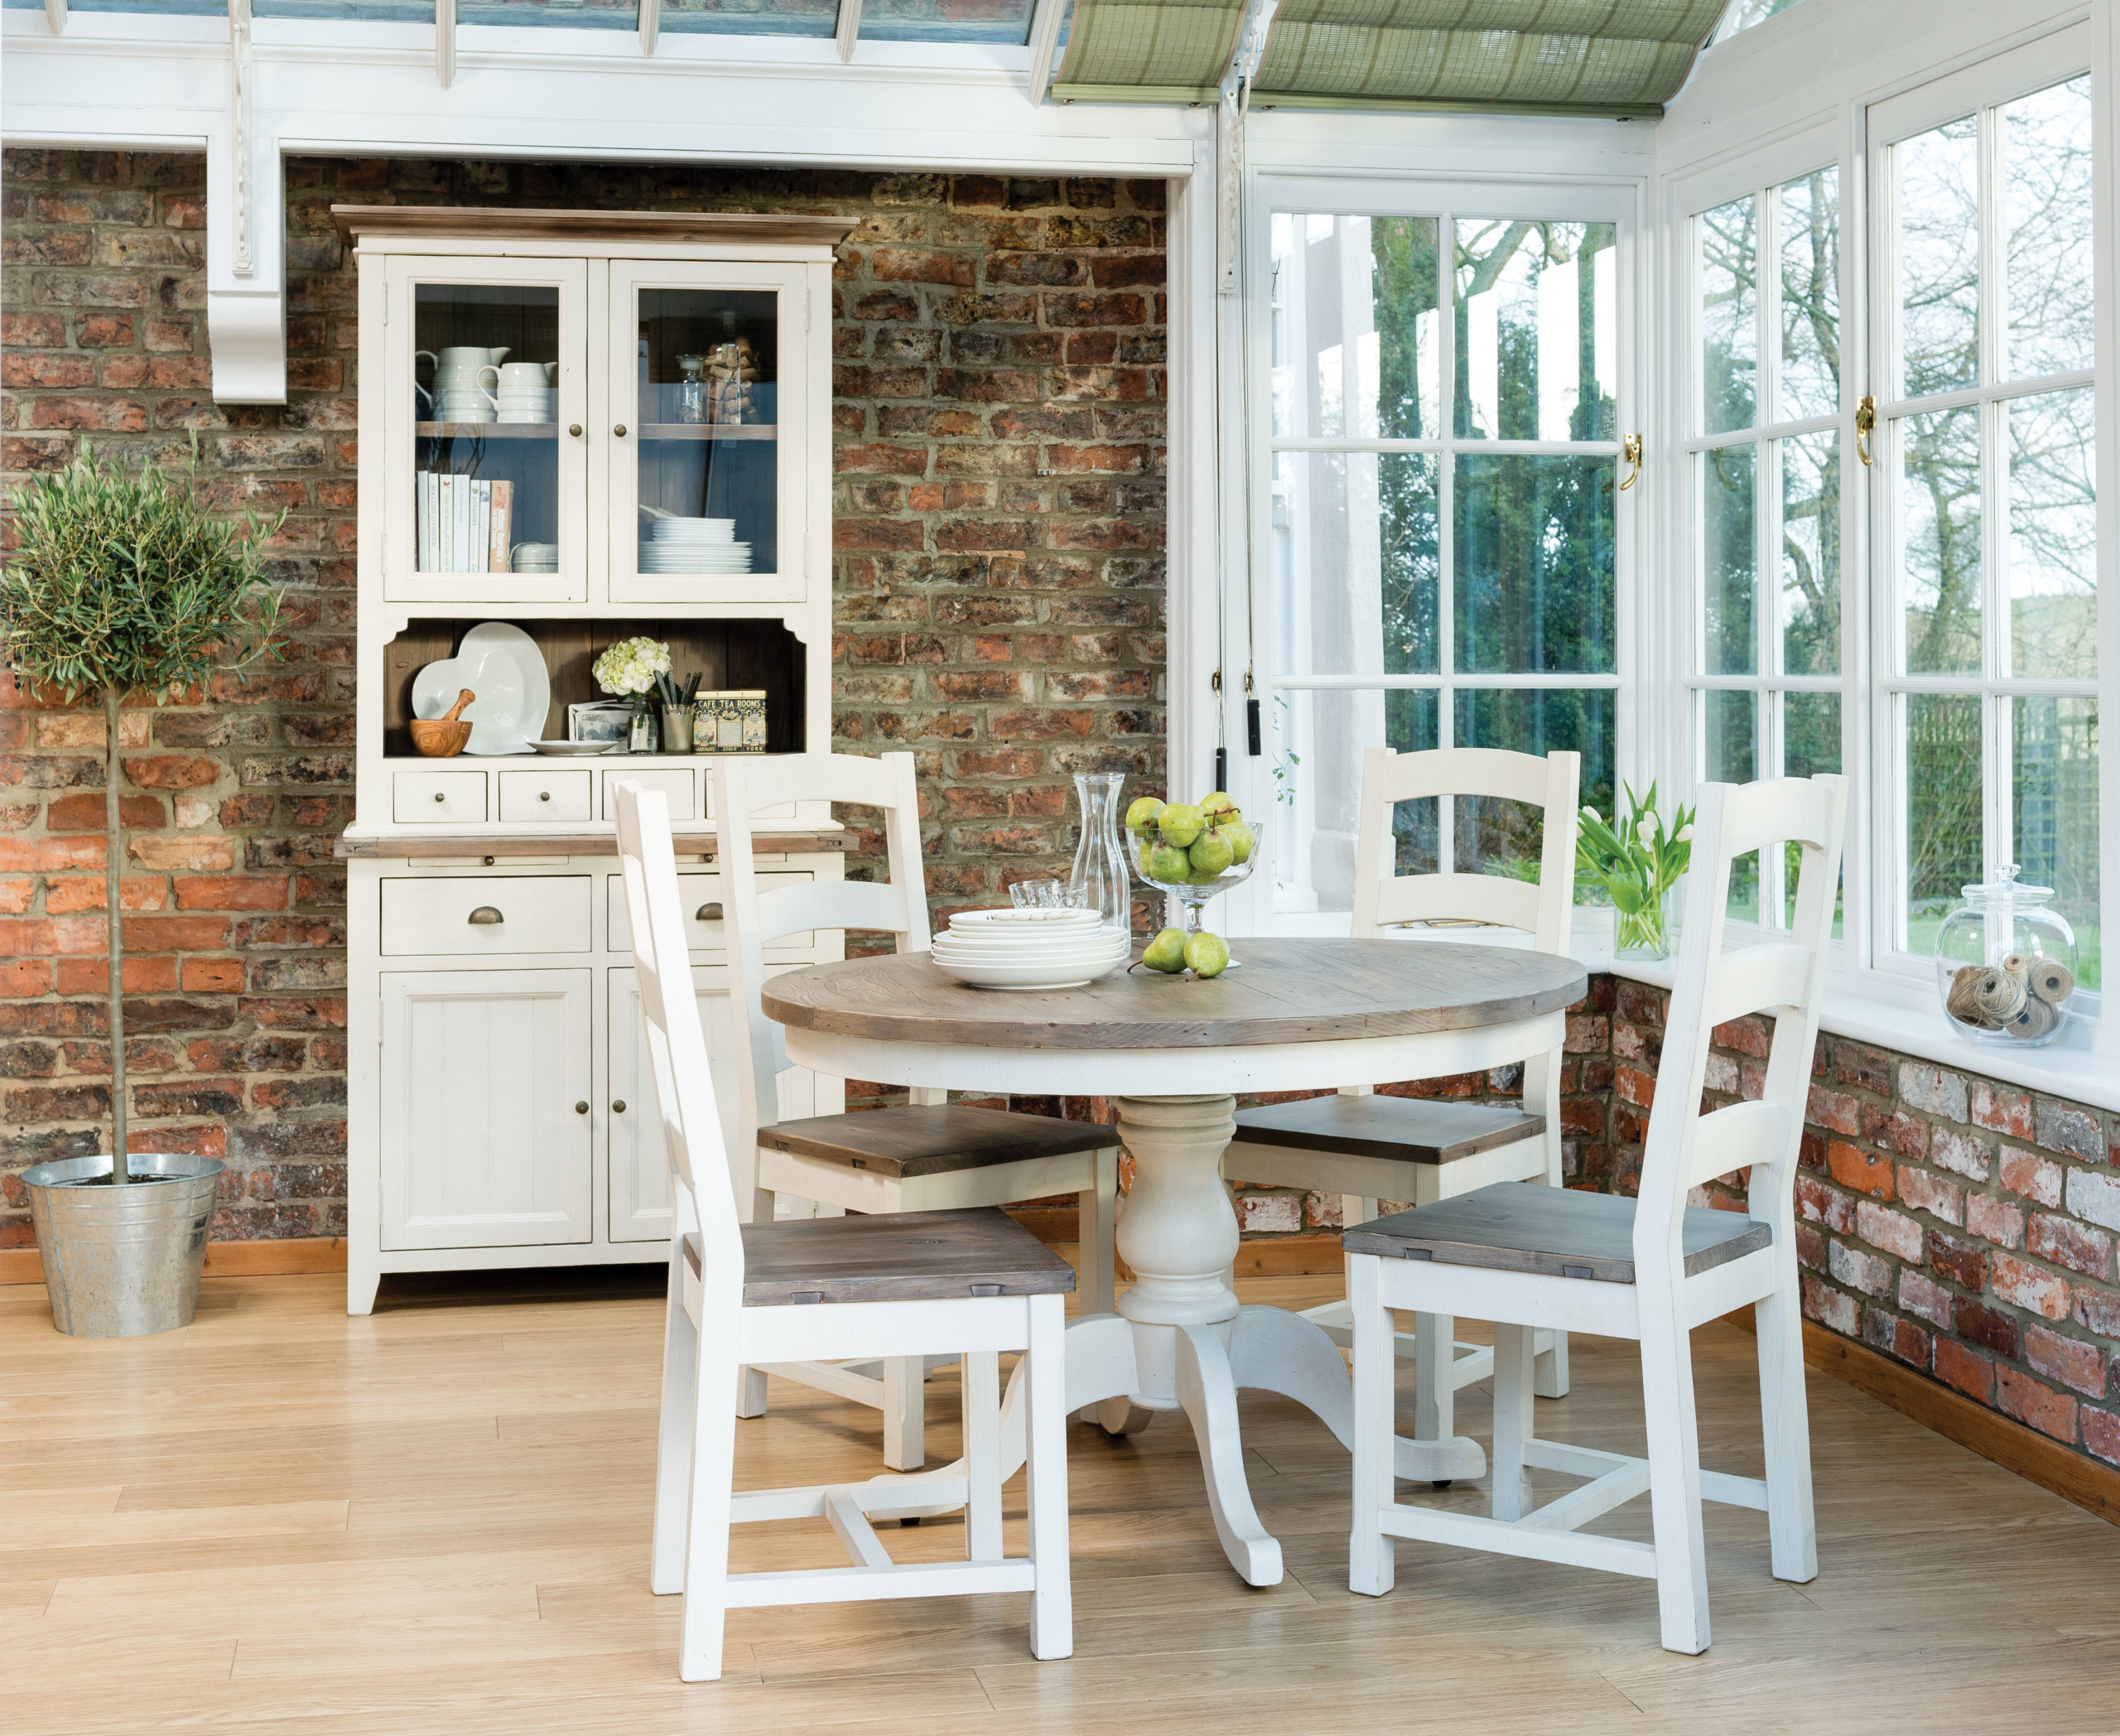 Copy of Aspen Round Dining Table   Narrow Sideboard in situ 2 scaled